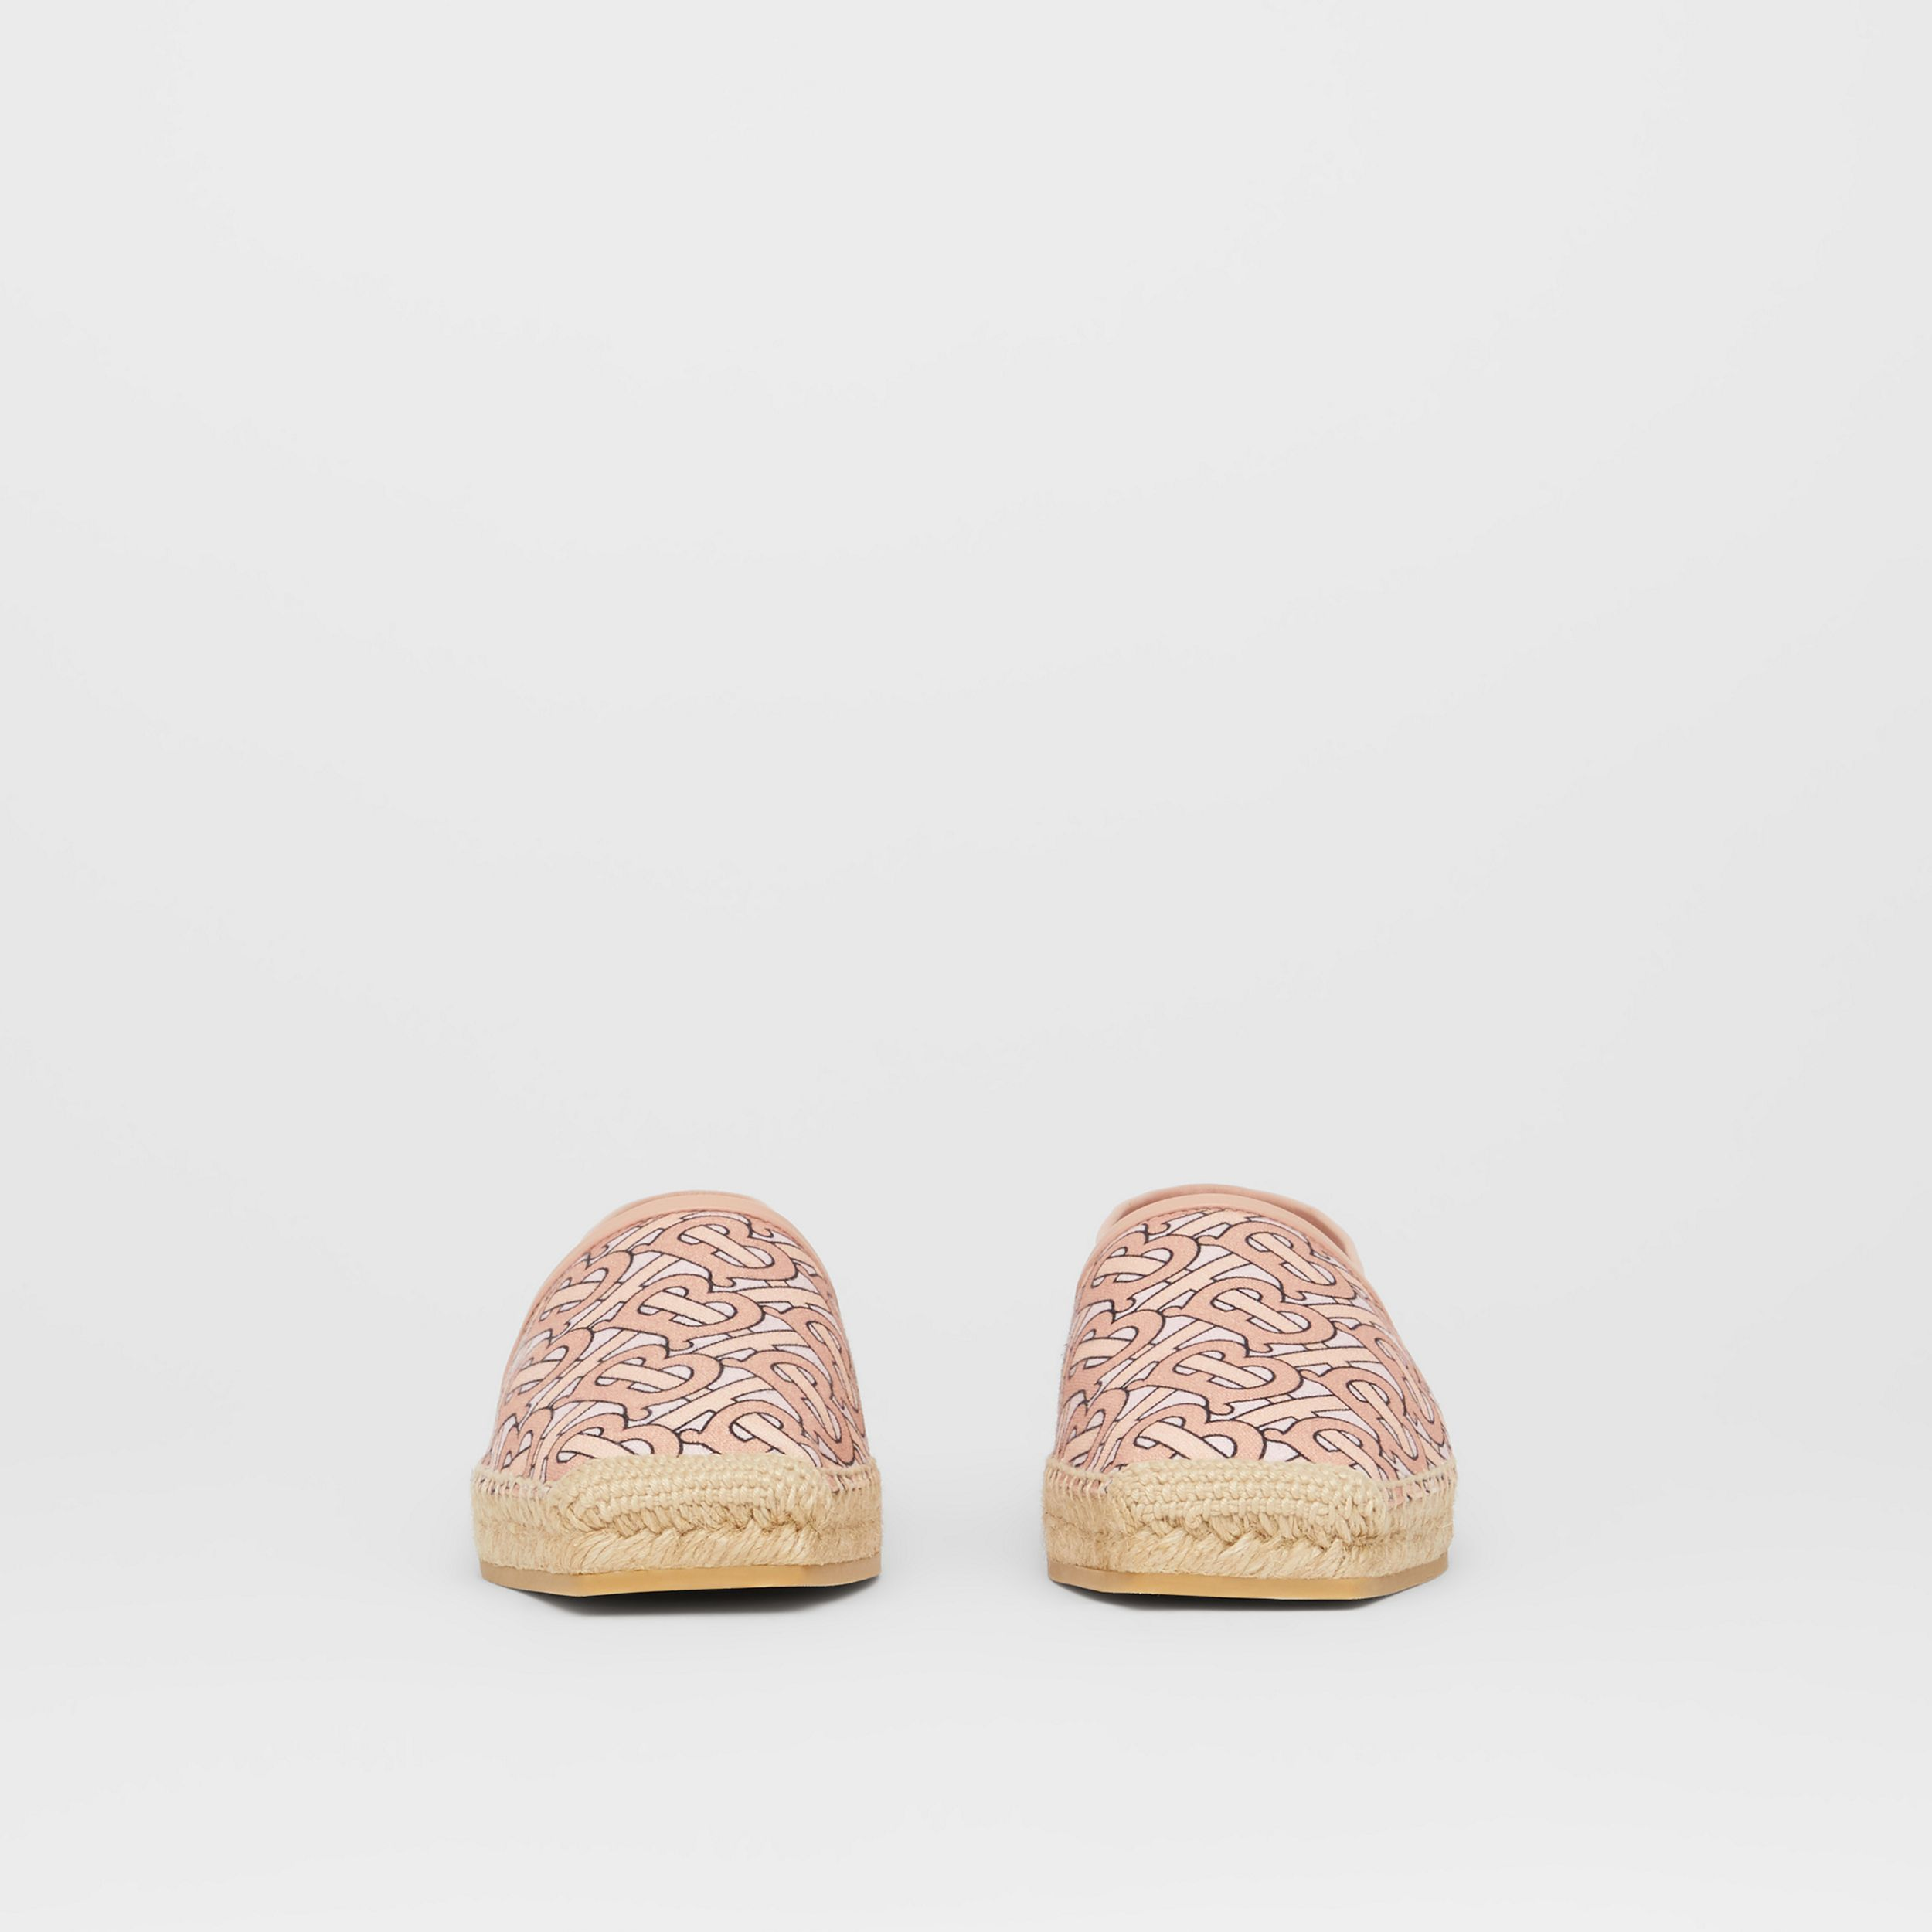 Monogram Print Cotton Canvas Espadrilles in Pale Copper Pink - Women | Burberry - 3